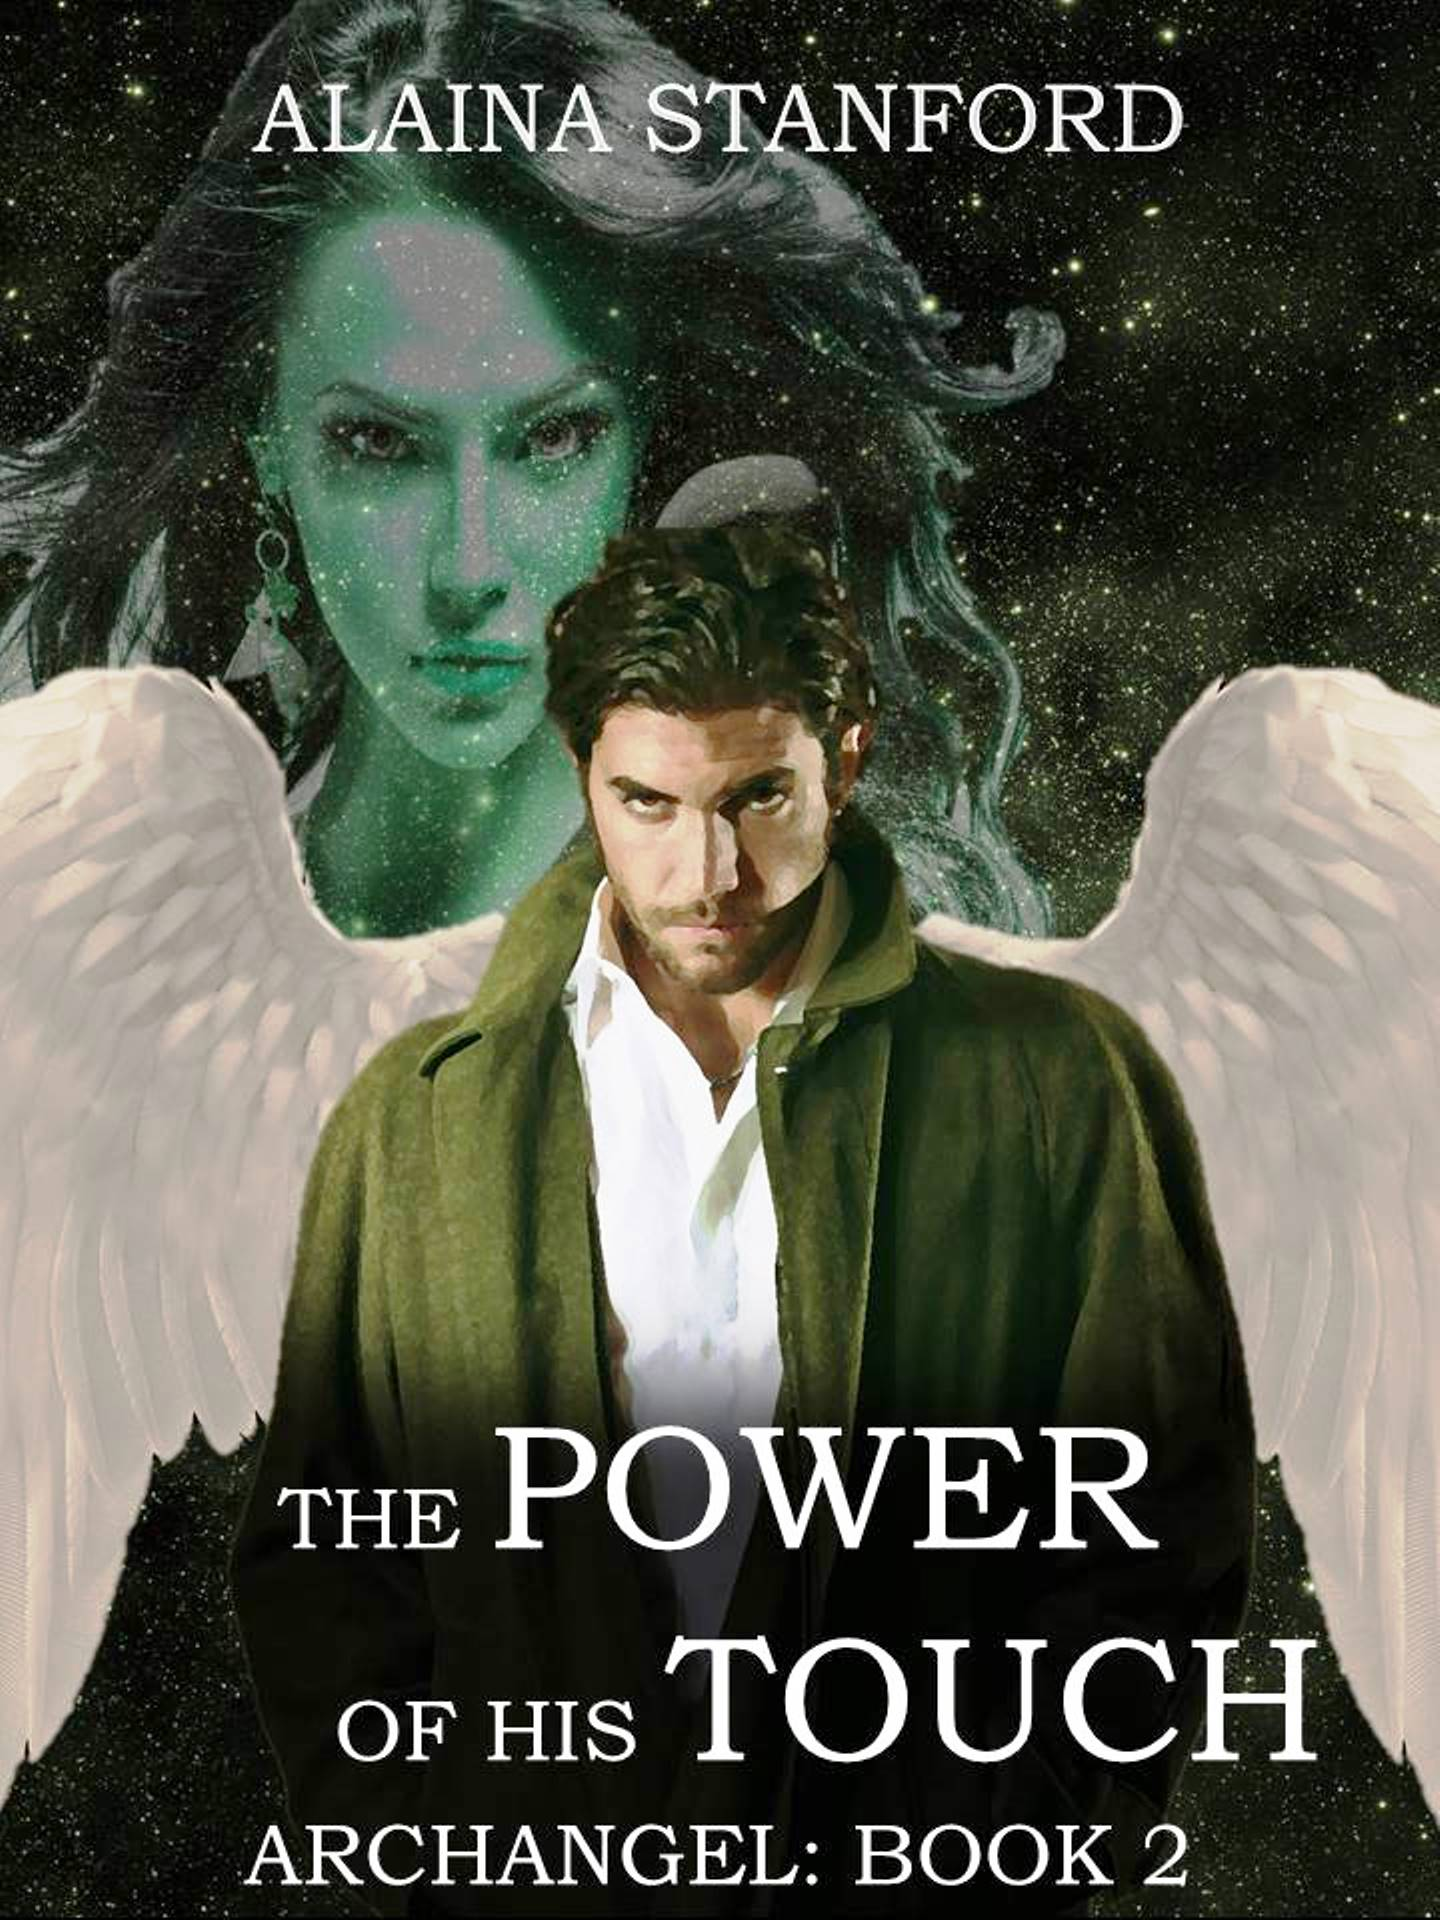 Power of his touch cover 3a final.jpg